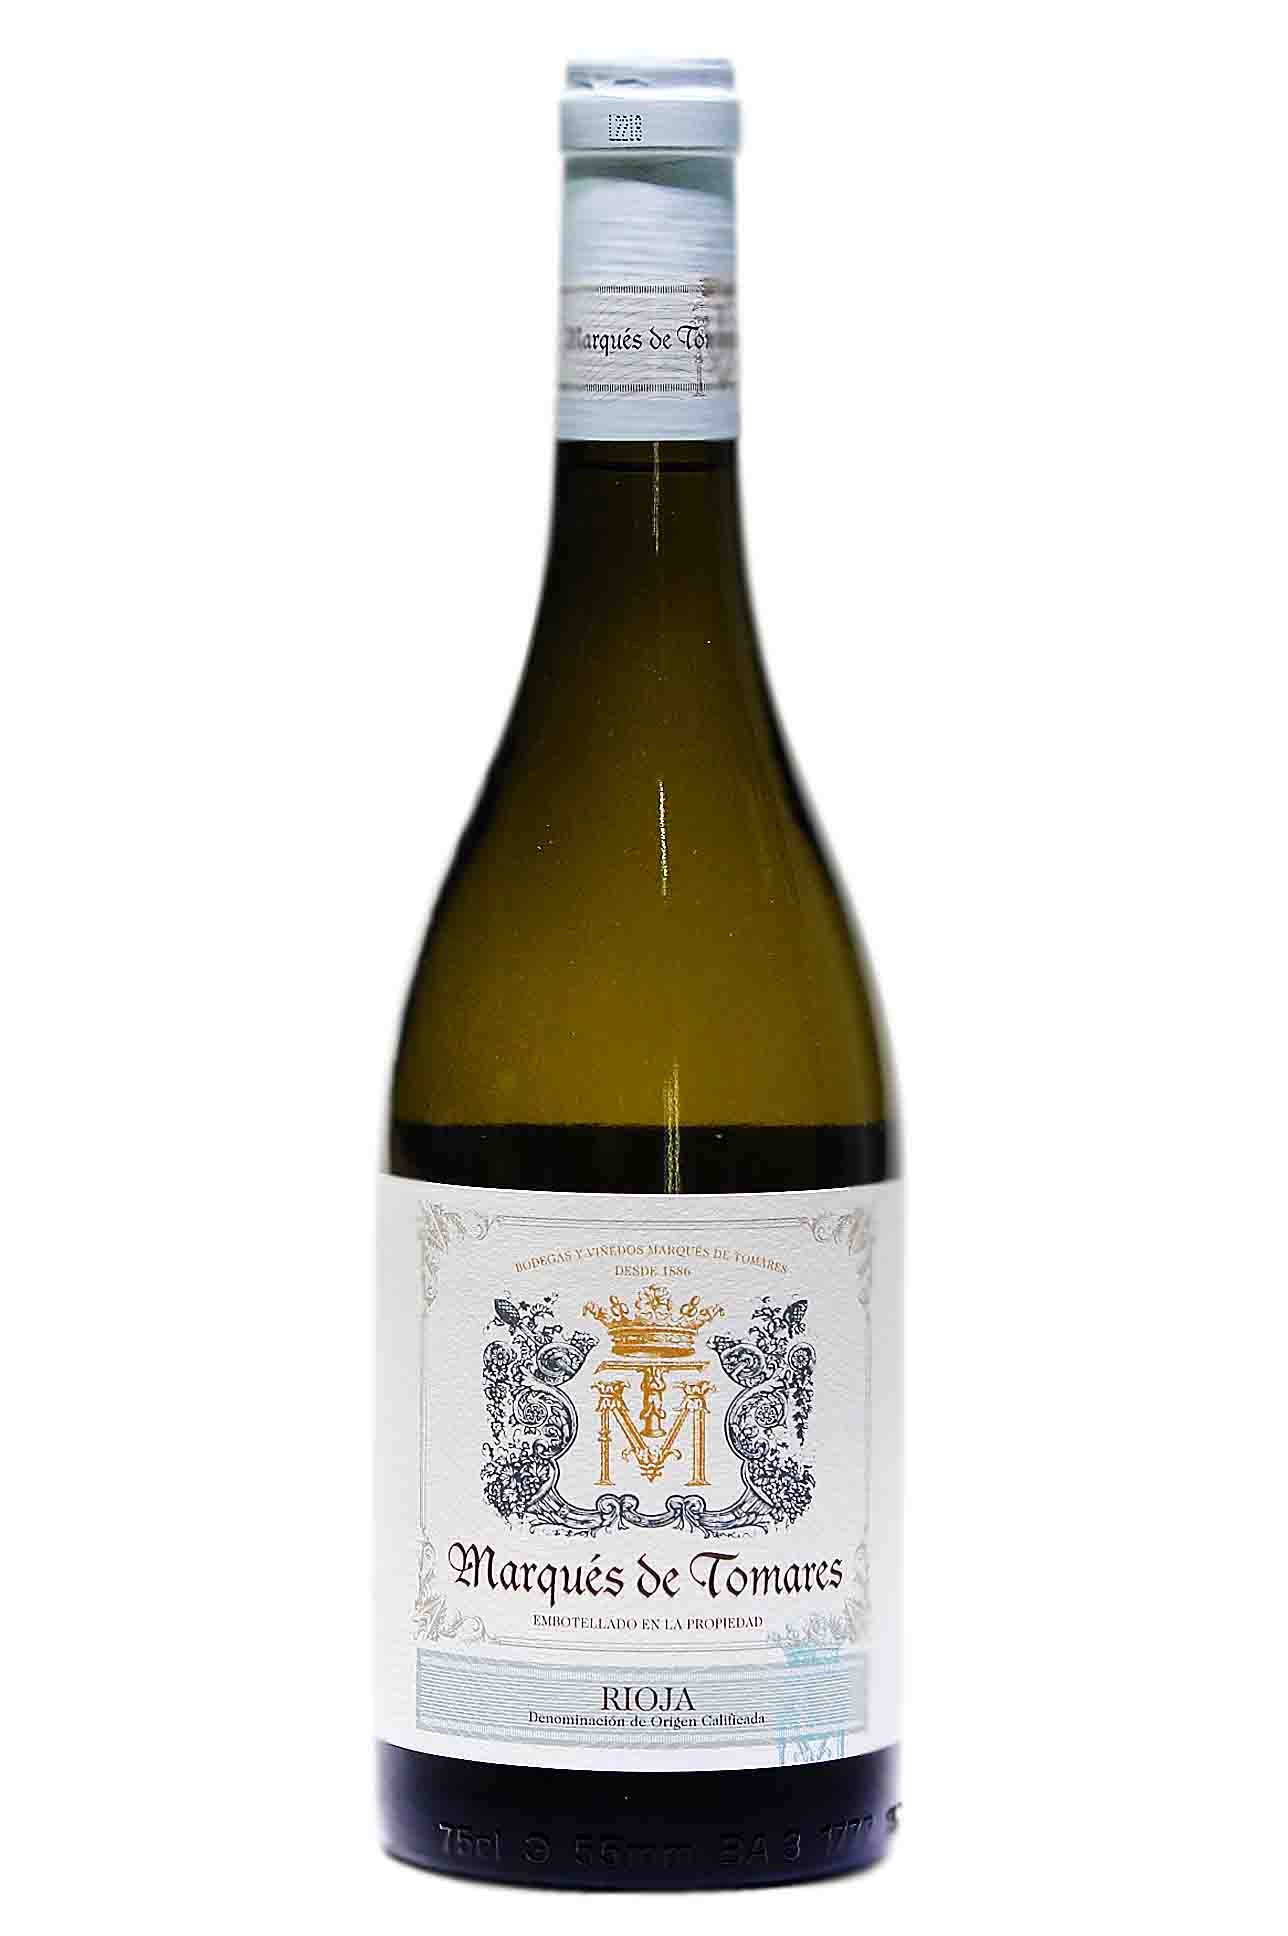 Marques de Tomares white wine